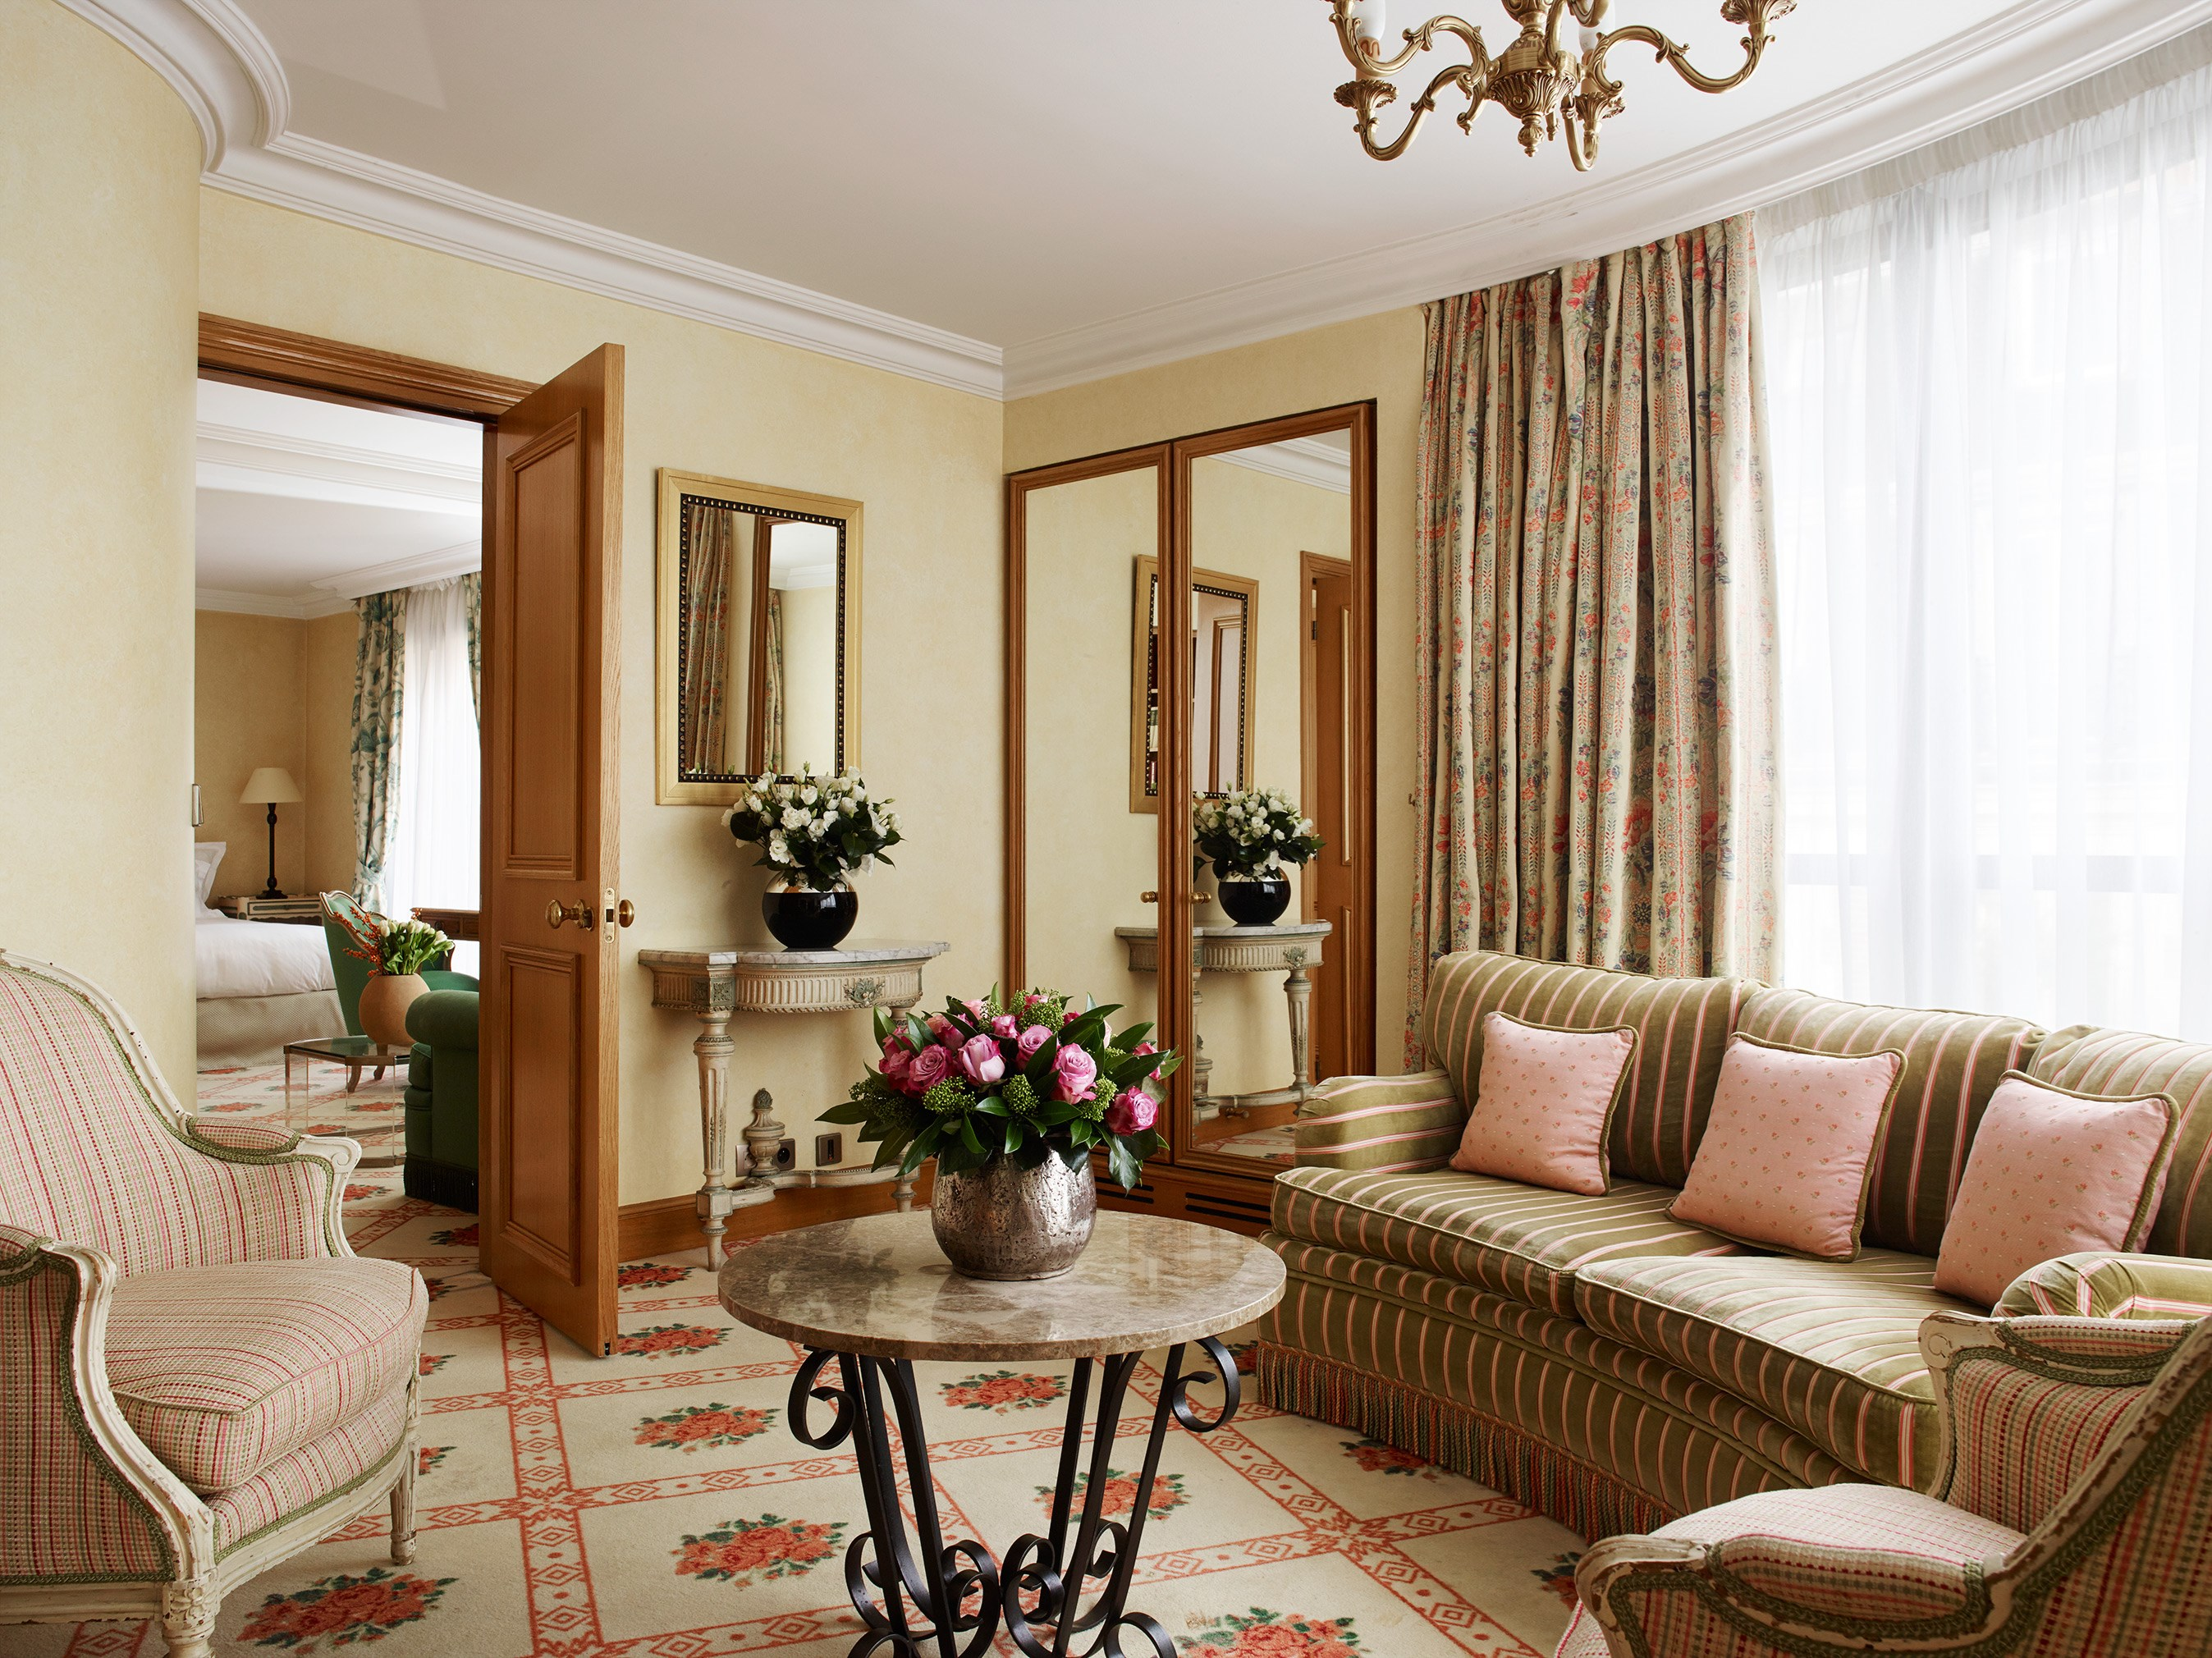 Living Room Suite Hotel de Vigny Paris